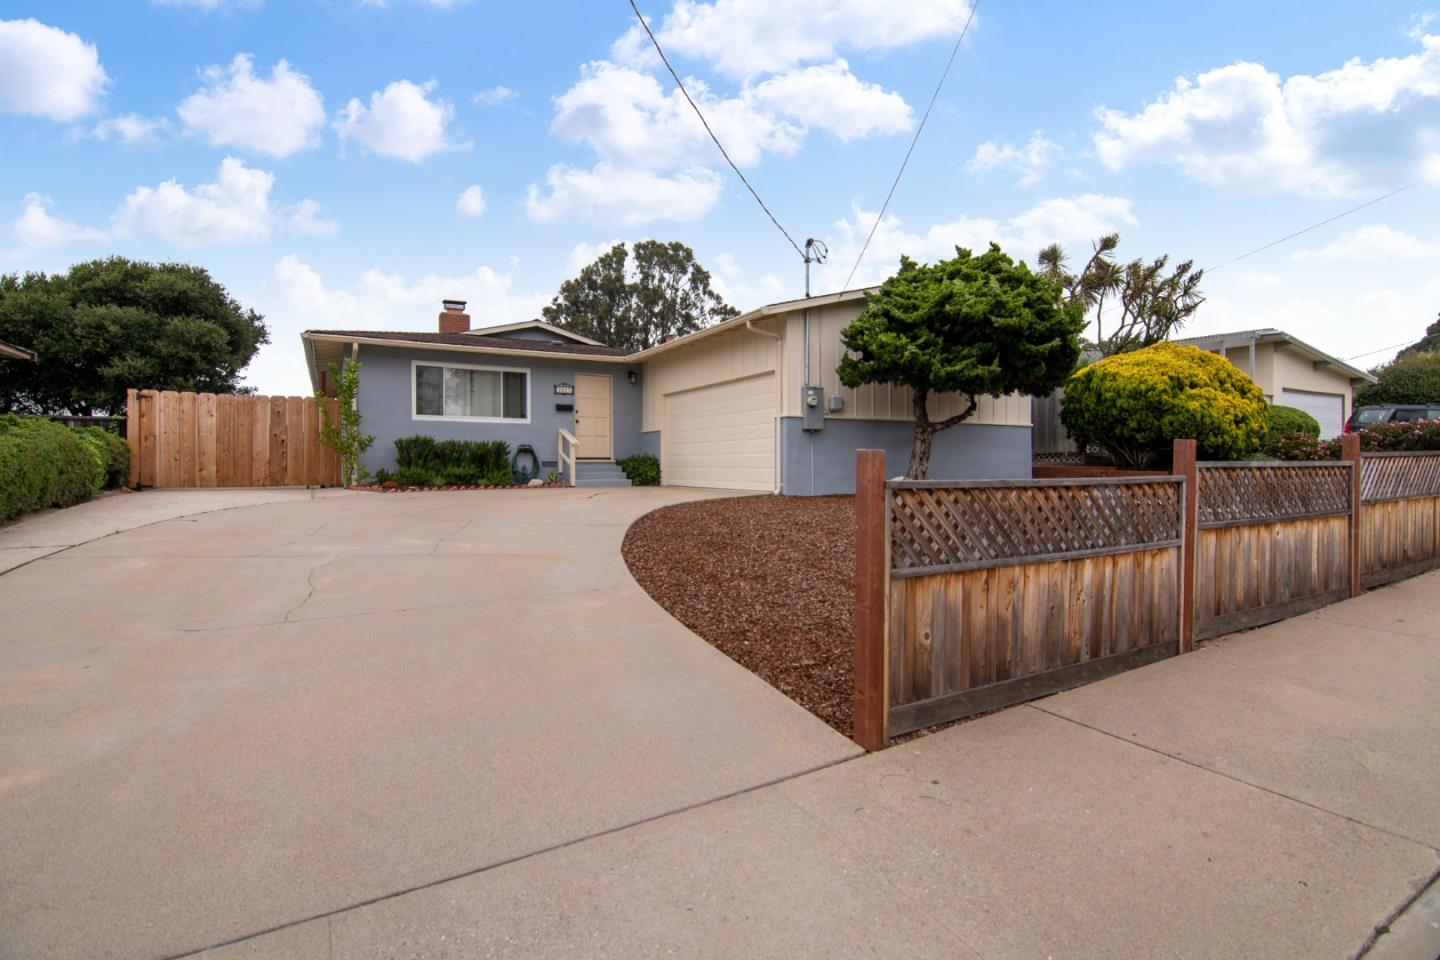 Photo of 2025 Military AVE, SEASIDE, CA 93955